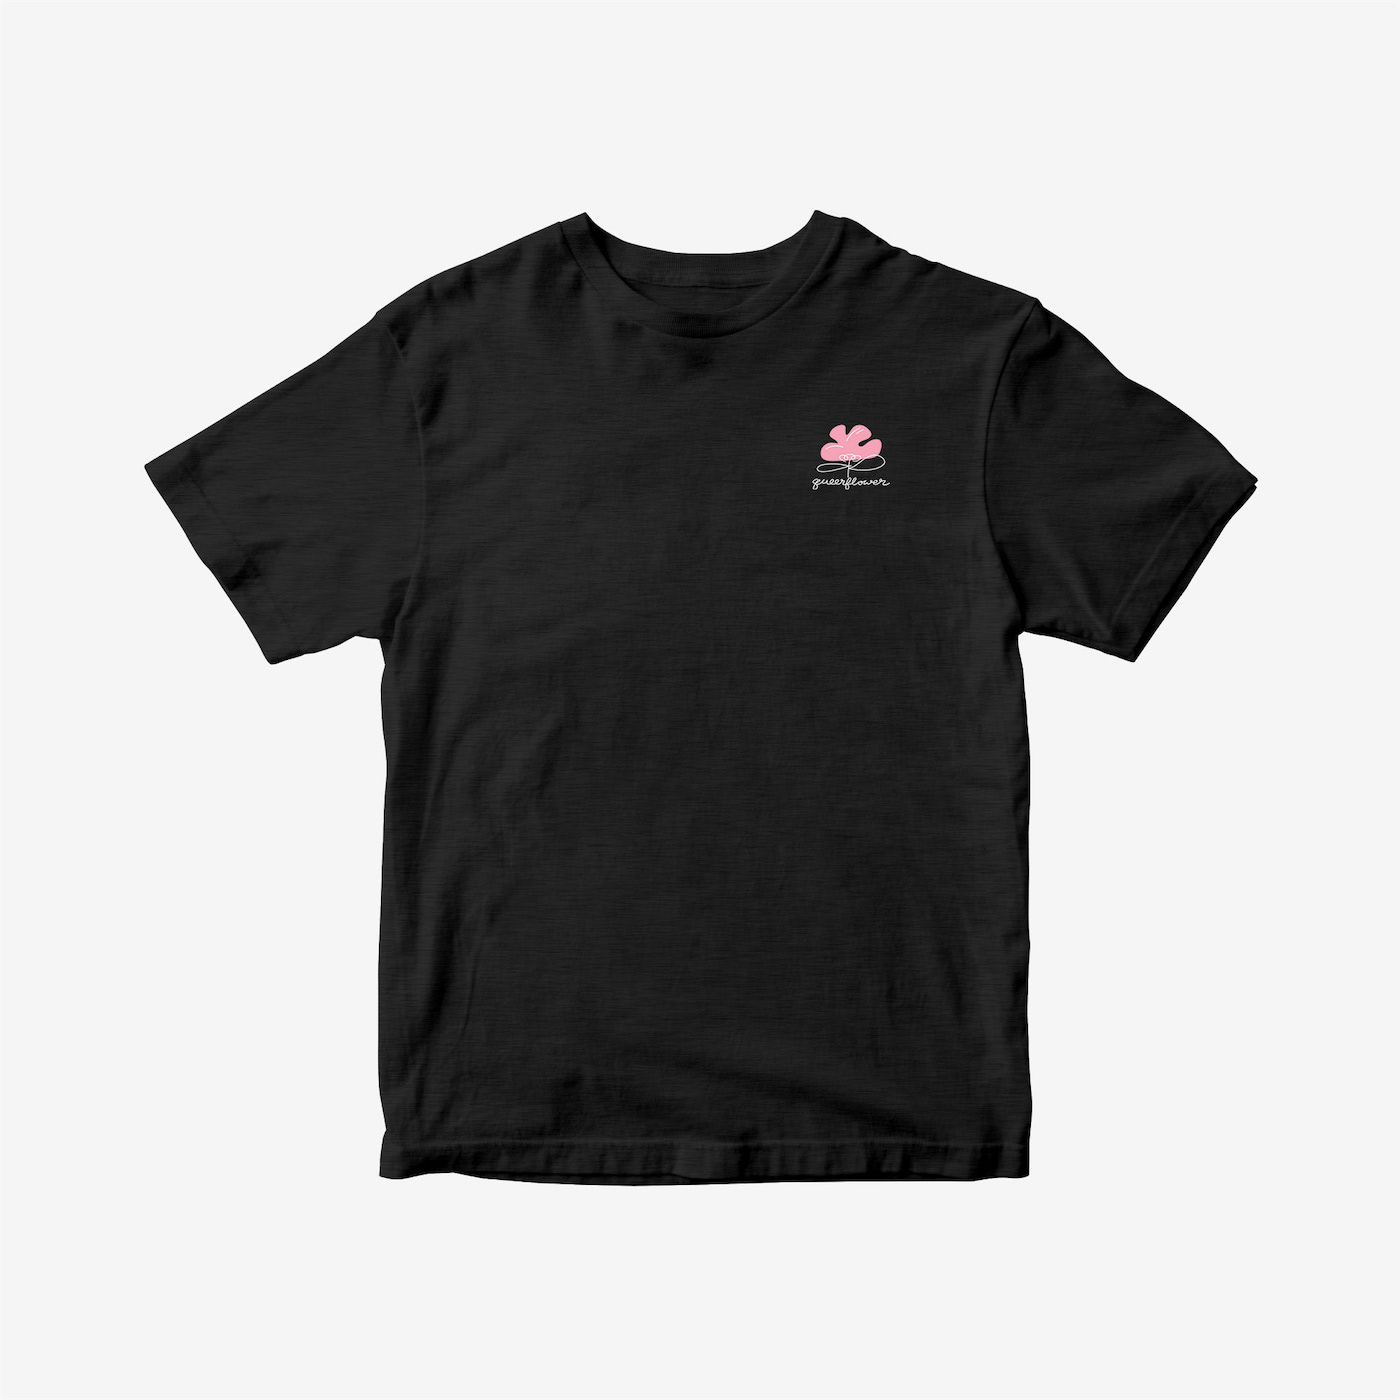 """This unisex-fit t-shirt features a small pink flower illustration on the left chest area with the phrase """"queerflower"""" in black underneath."""